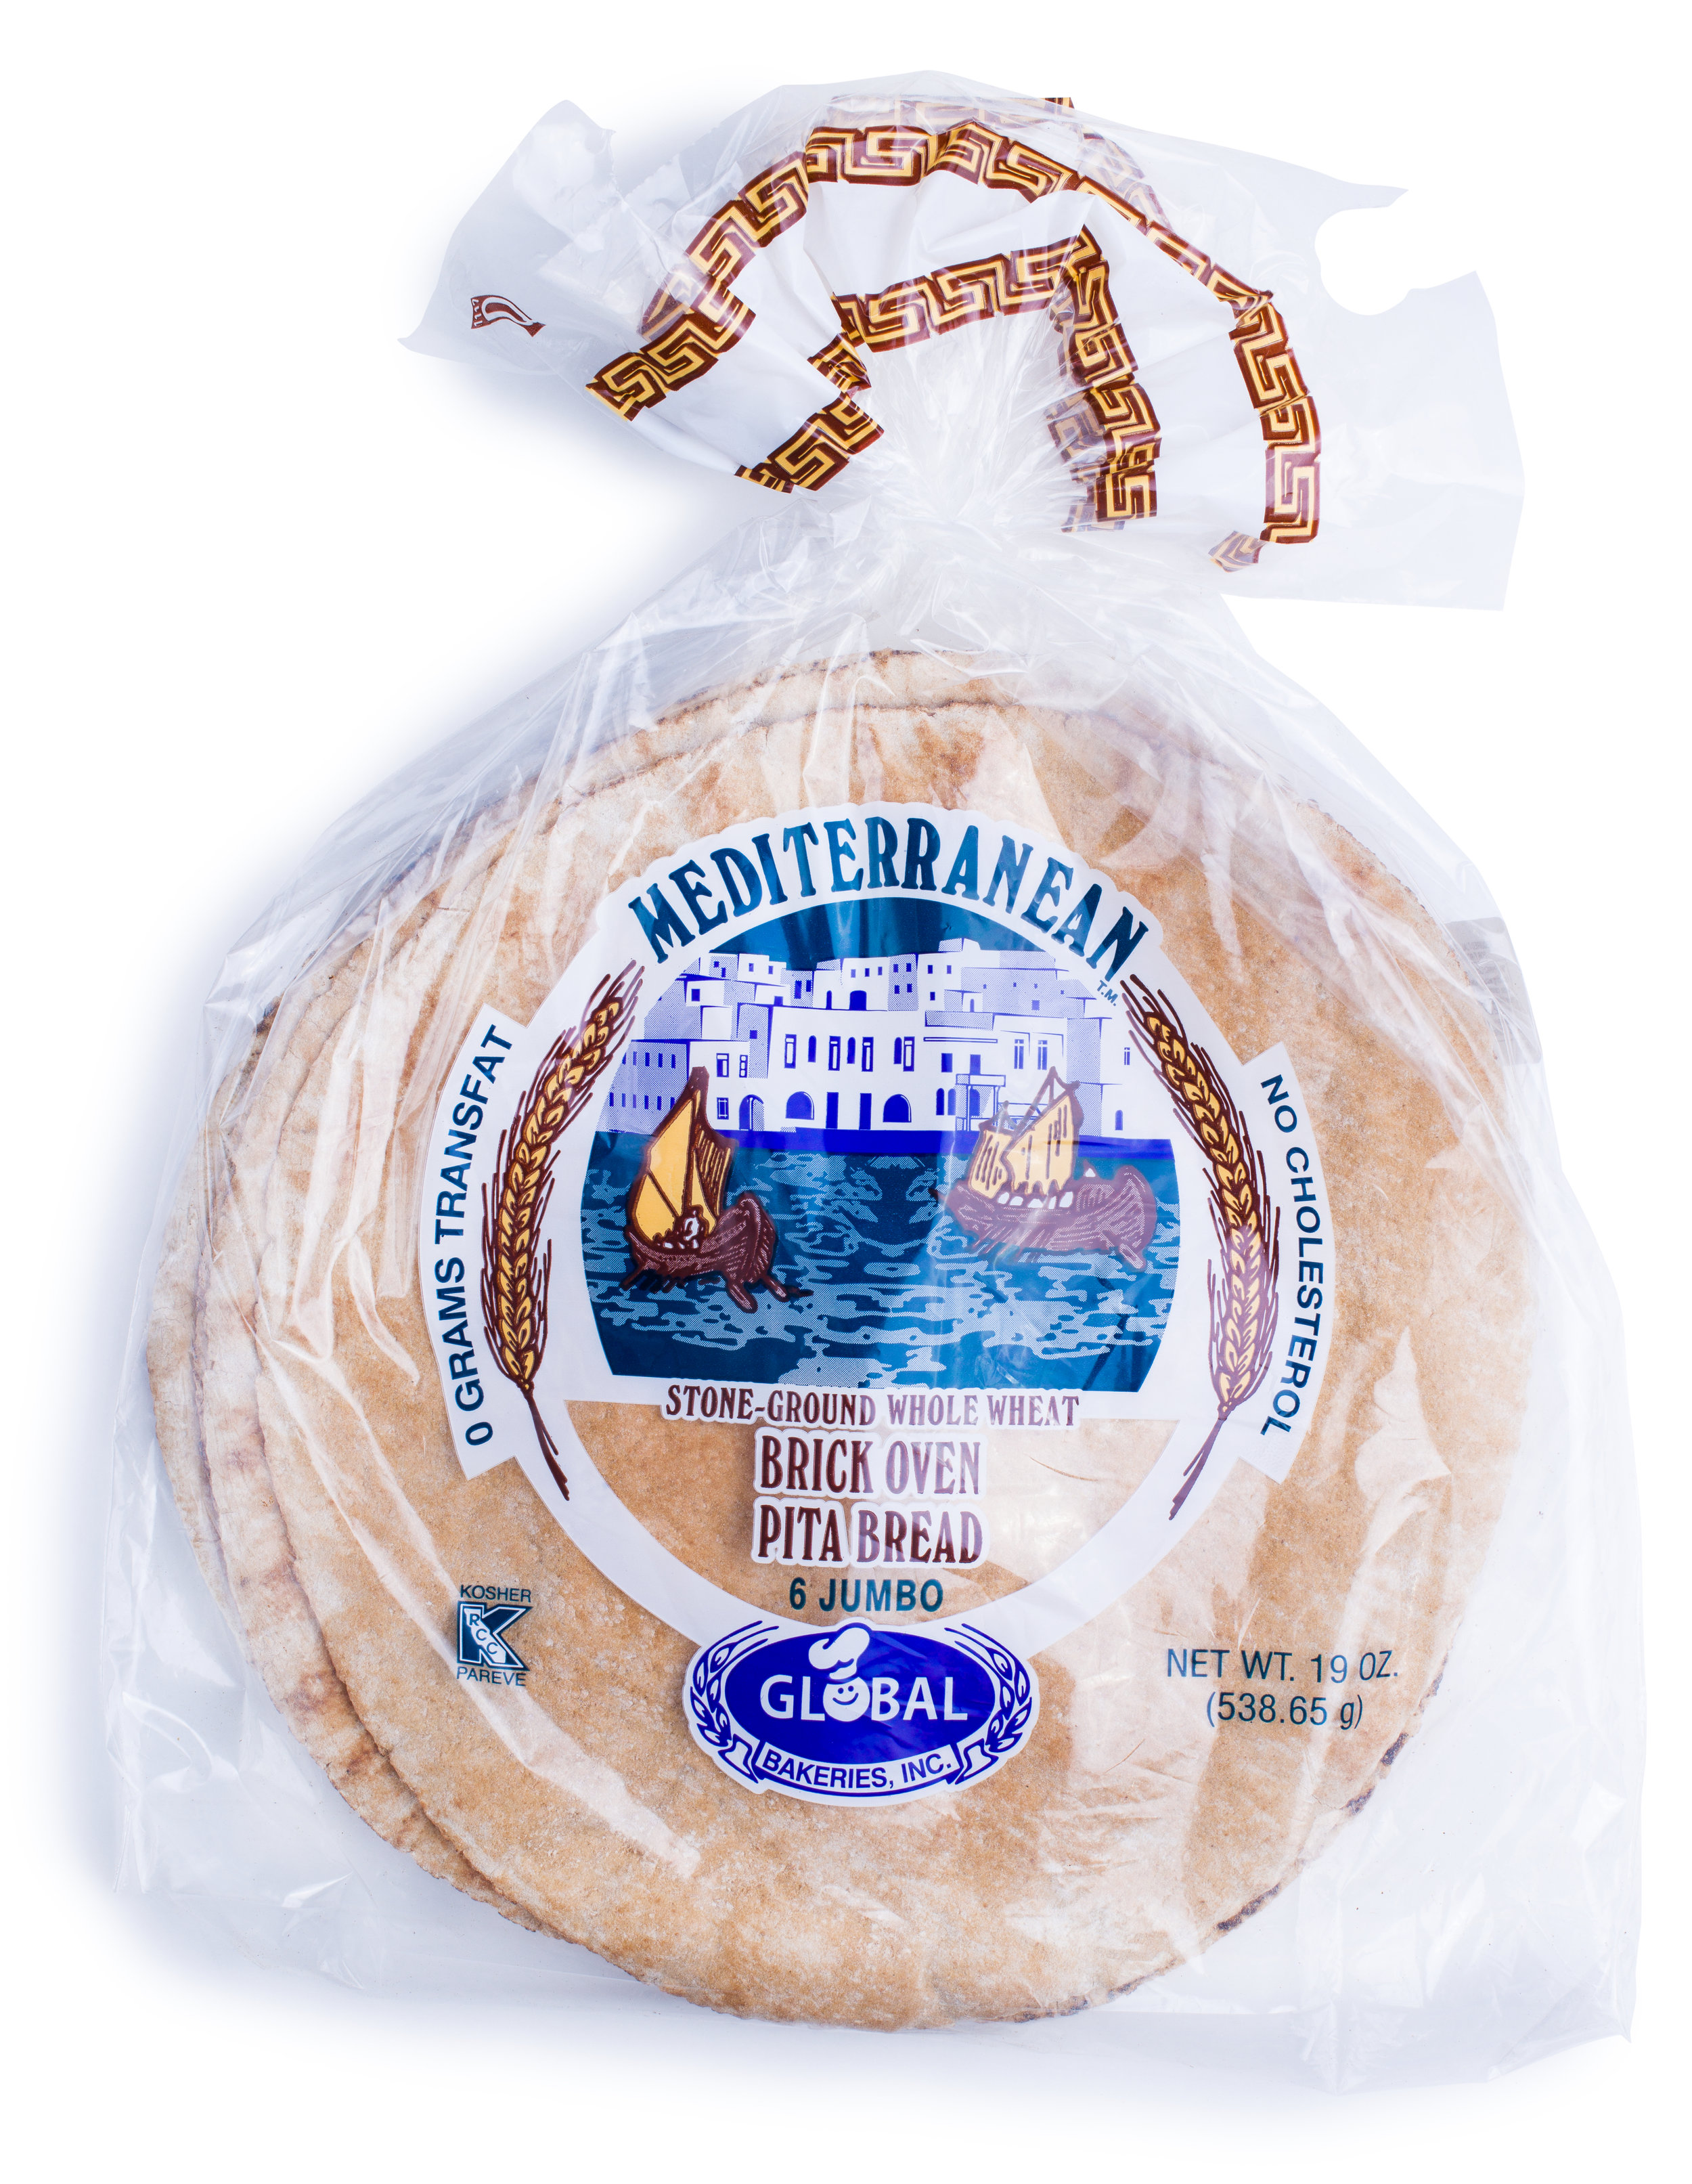 Mediterranean Jumbo Whole Wheat Pita.jpeg